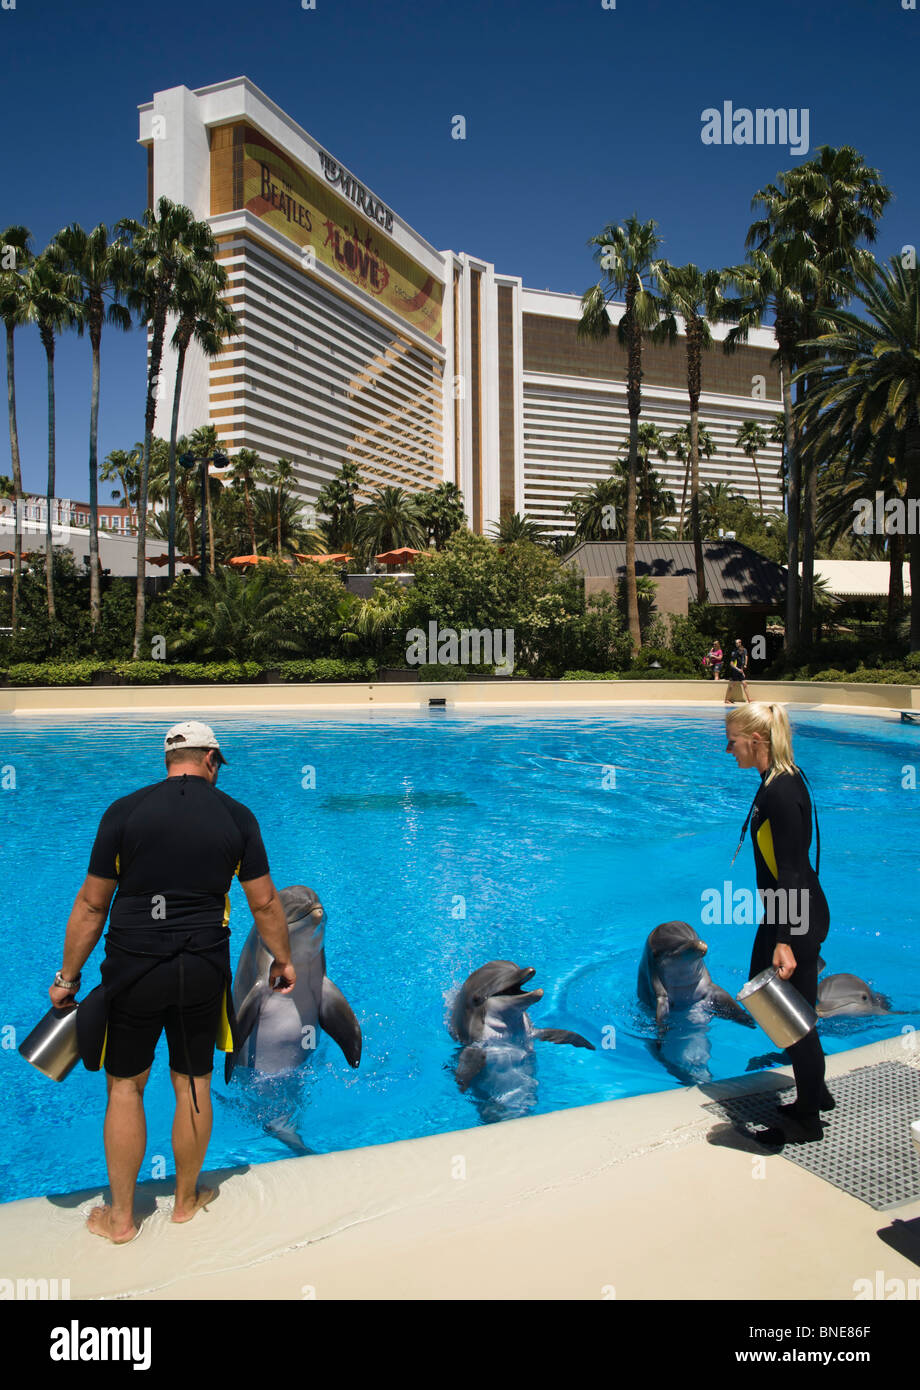 Dolphin pool at the mirage an mgm resort hotel on the las vegas strip renamed